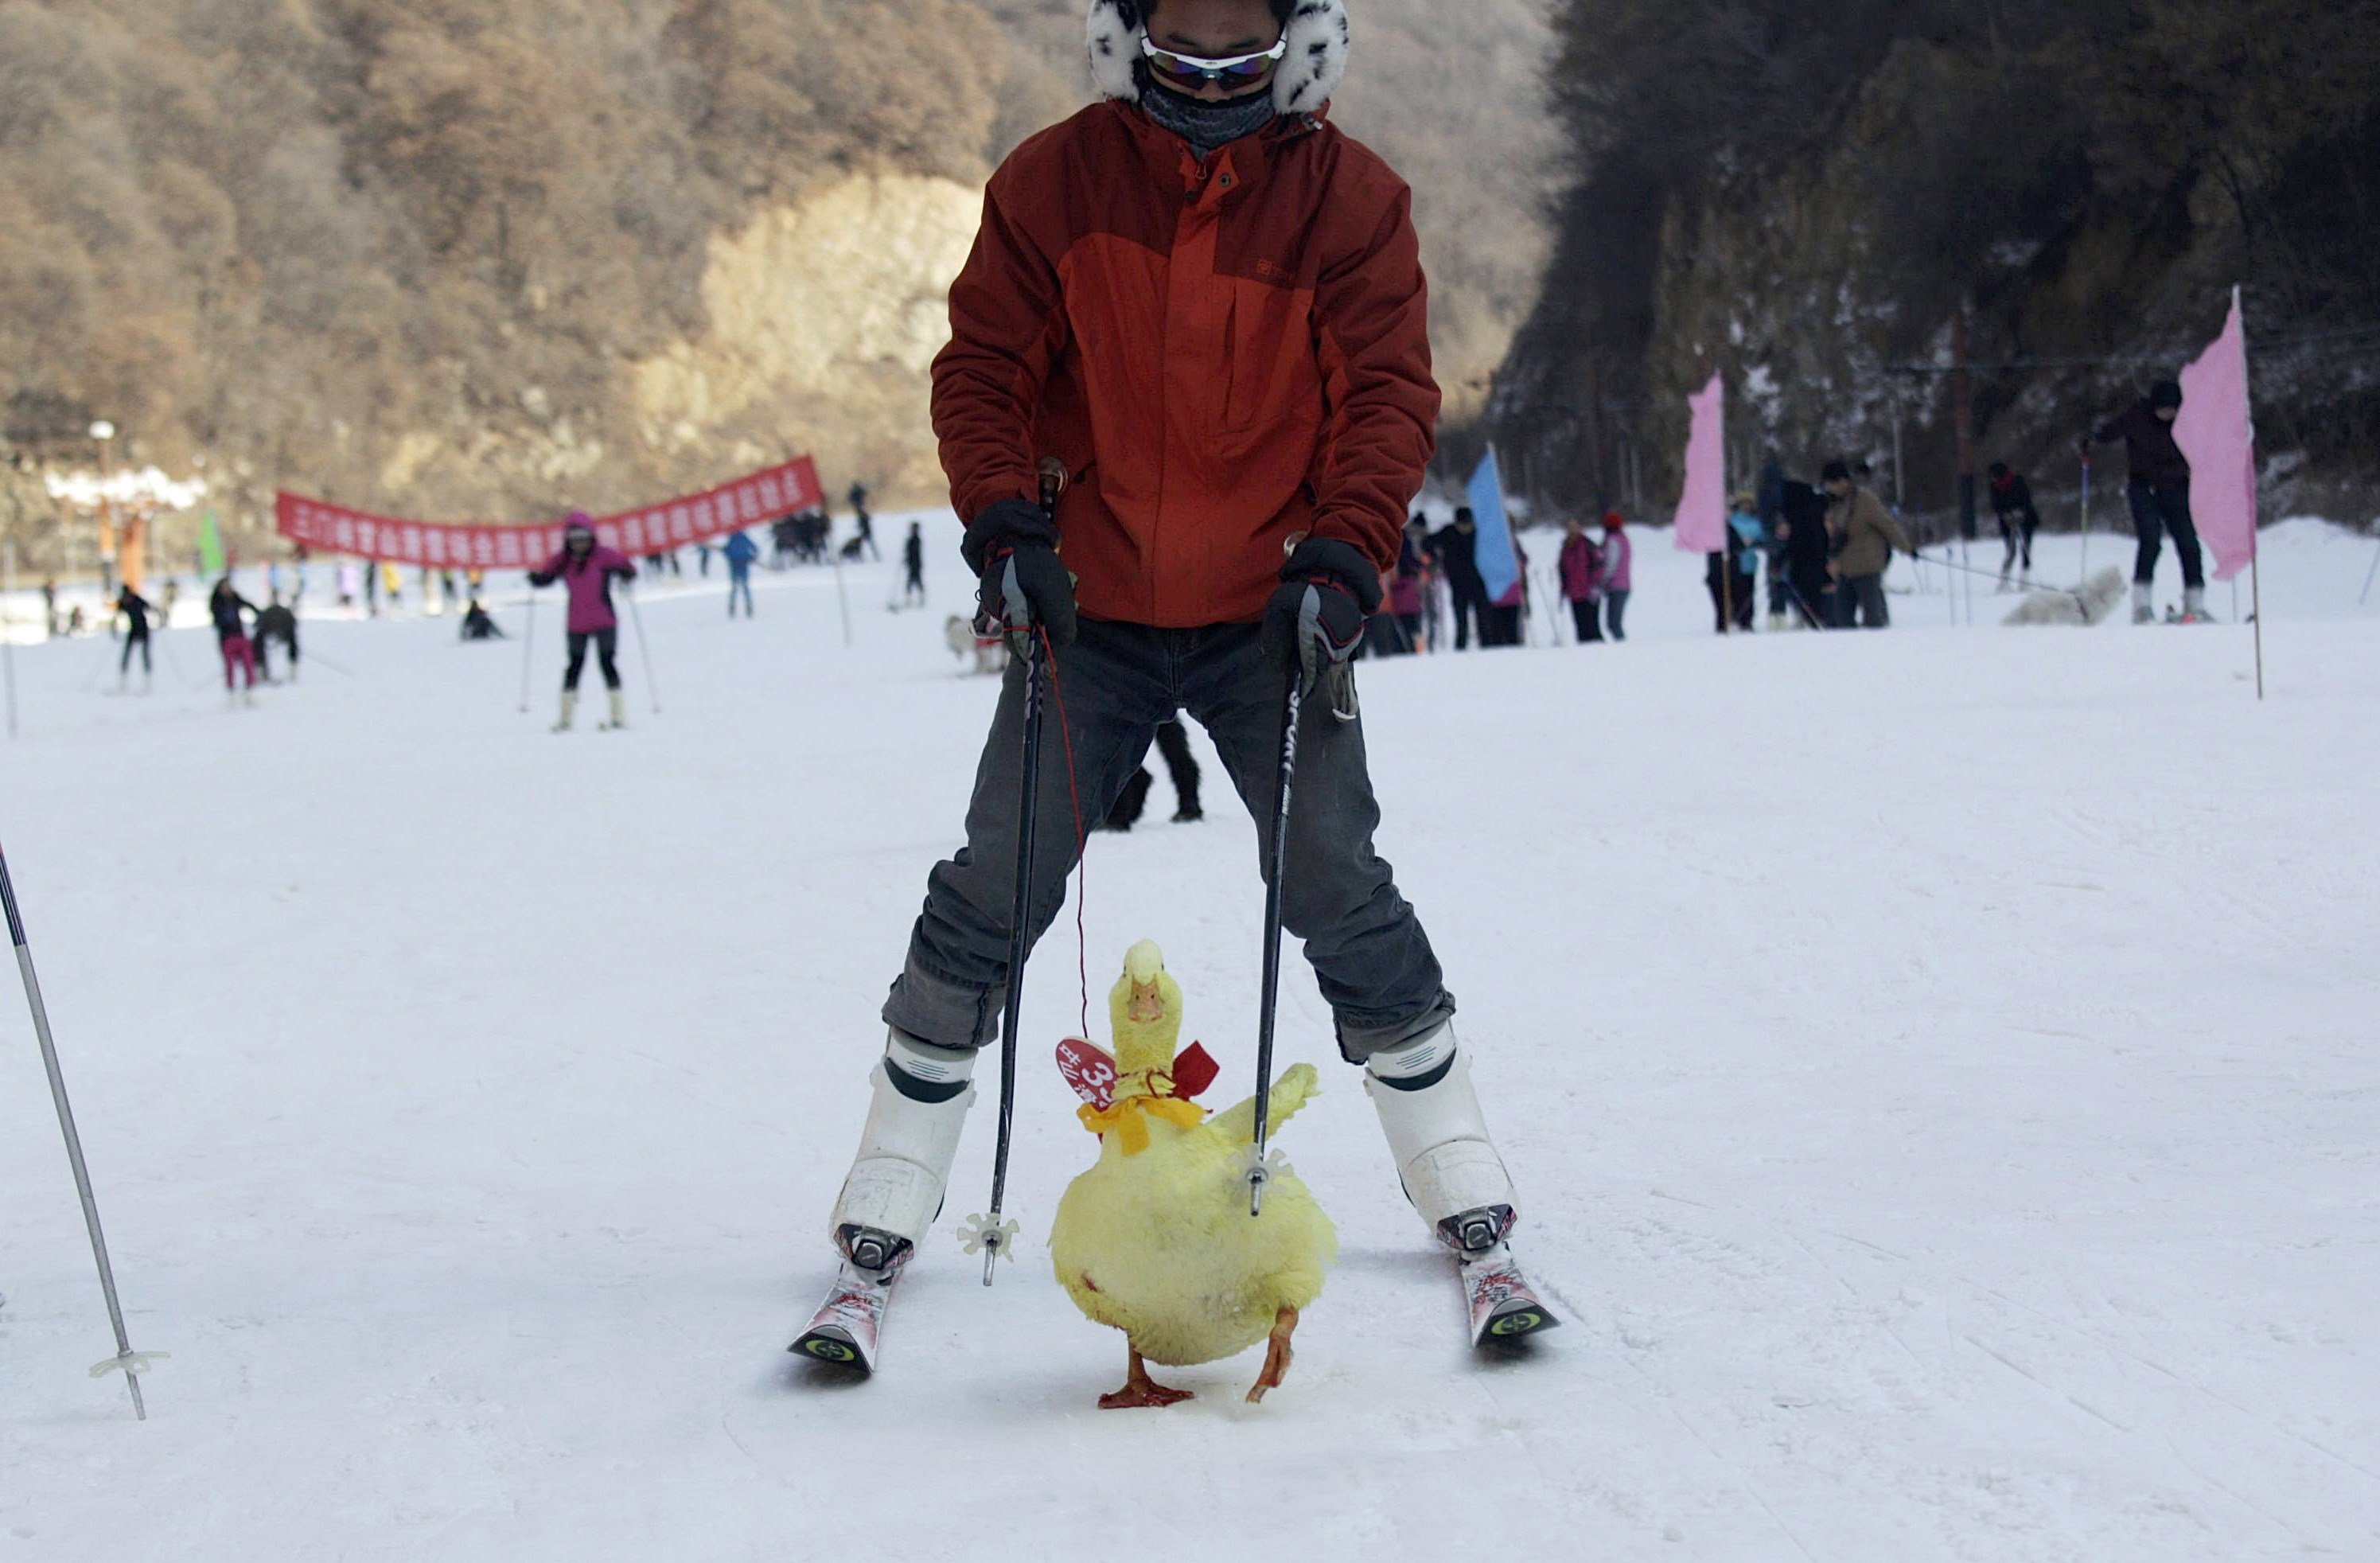 A contestant skis with his pet duck during a skiing-with-pets competition at a ski resort in Sanmenxia, Henan province, Jan. 12, 2014.